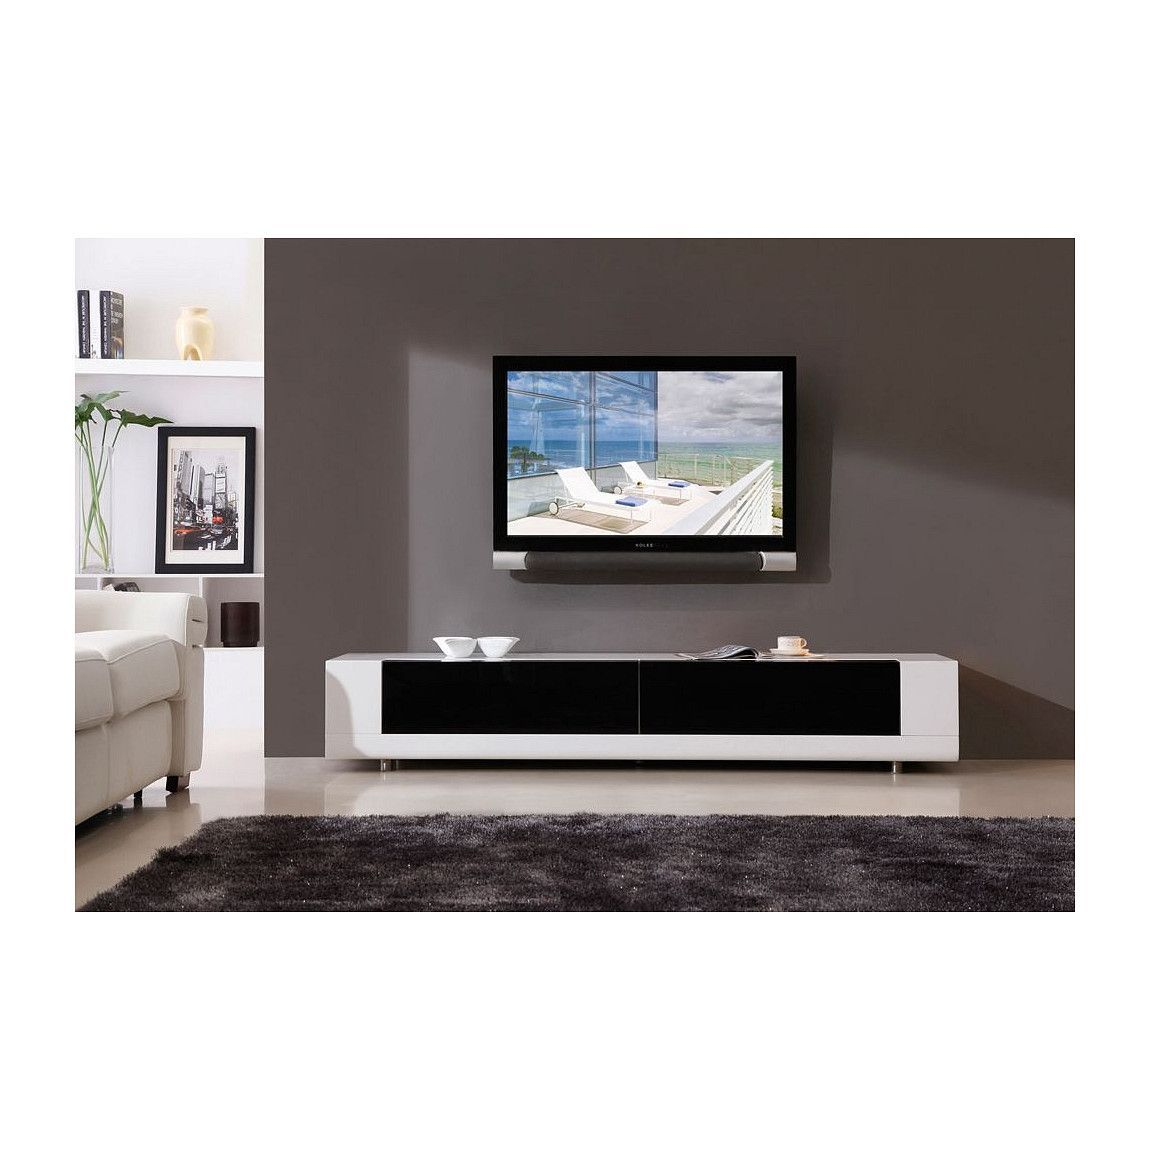 The Epitome Of Cutting Edge Contemporary Design, The B Modern Editor White  High Gloss TV Stand Is Created For Those Seeking Modern Atmosphere In Their  Home.